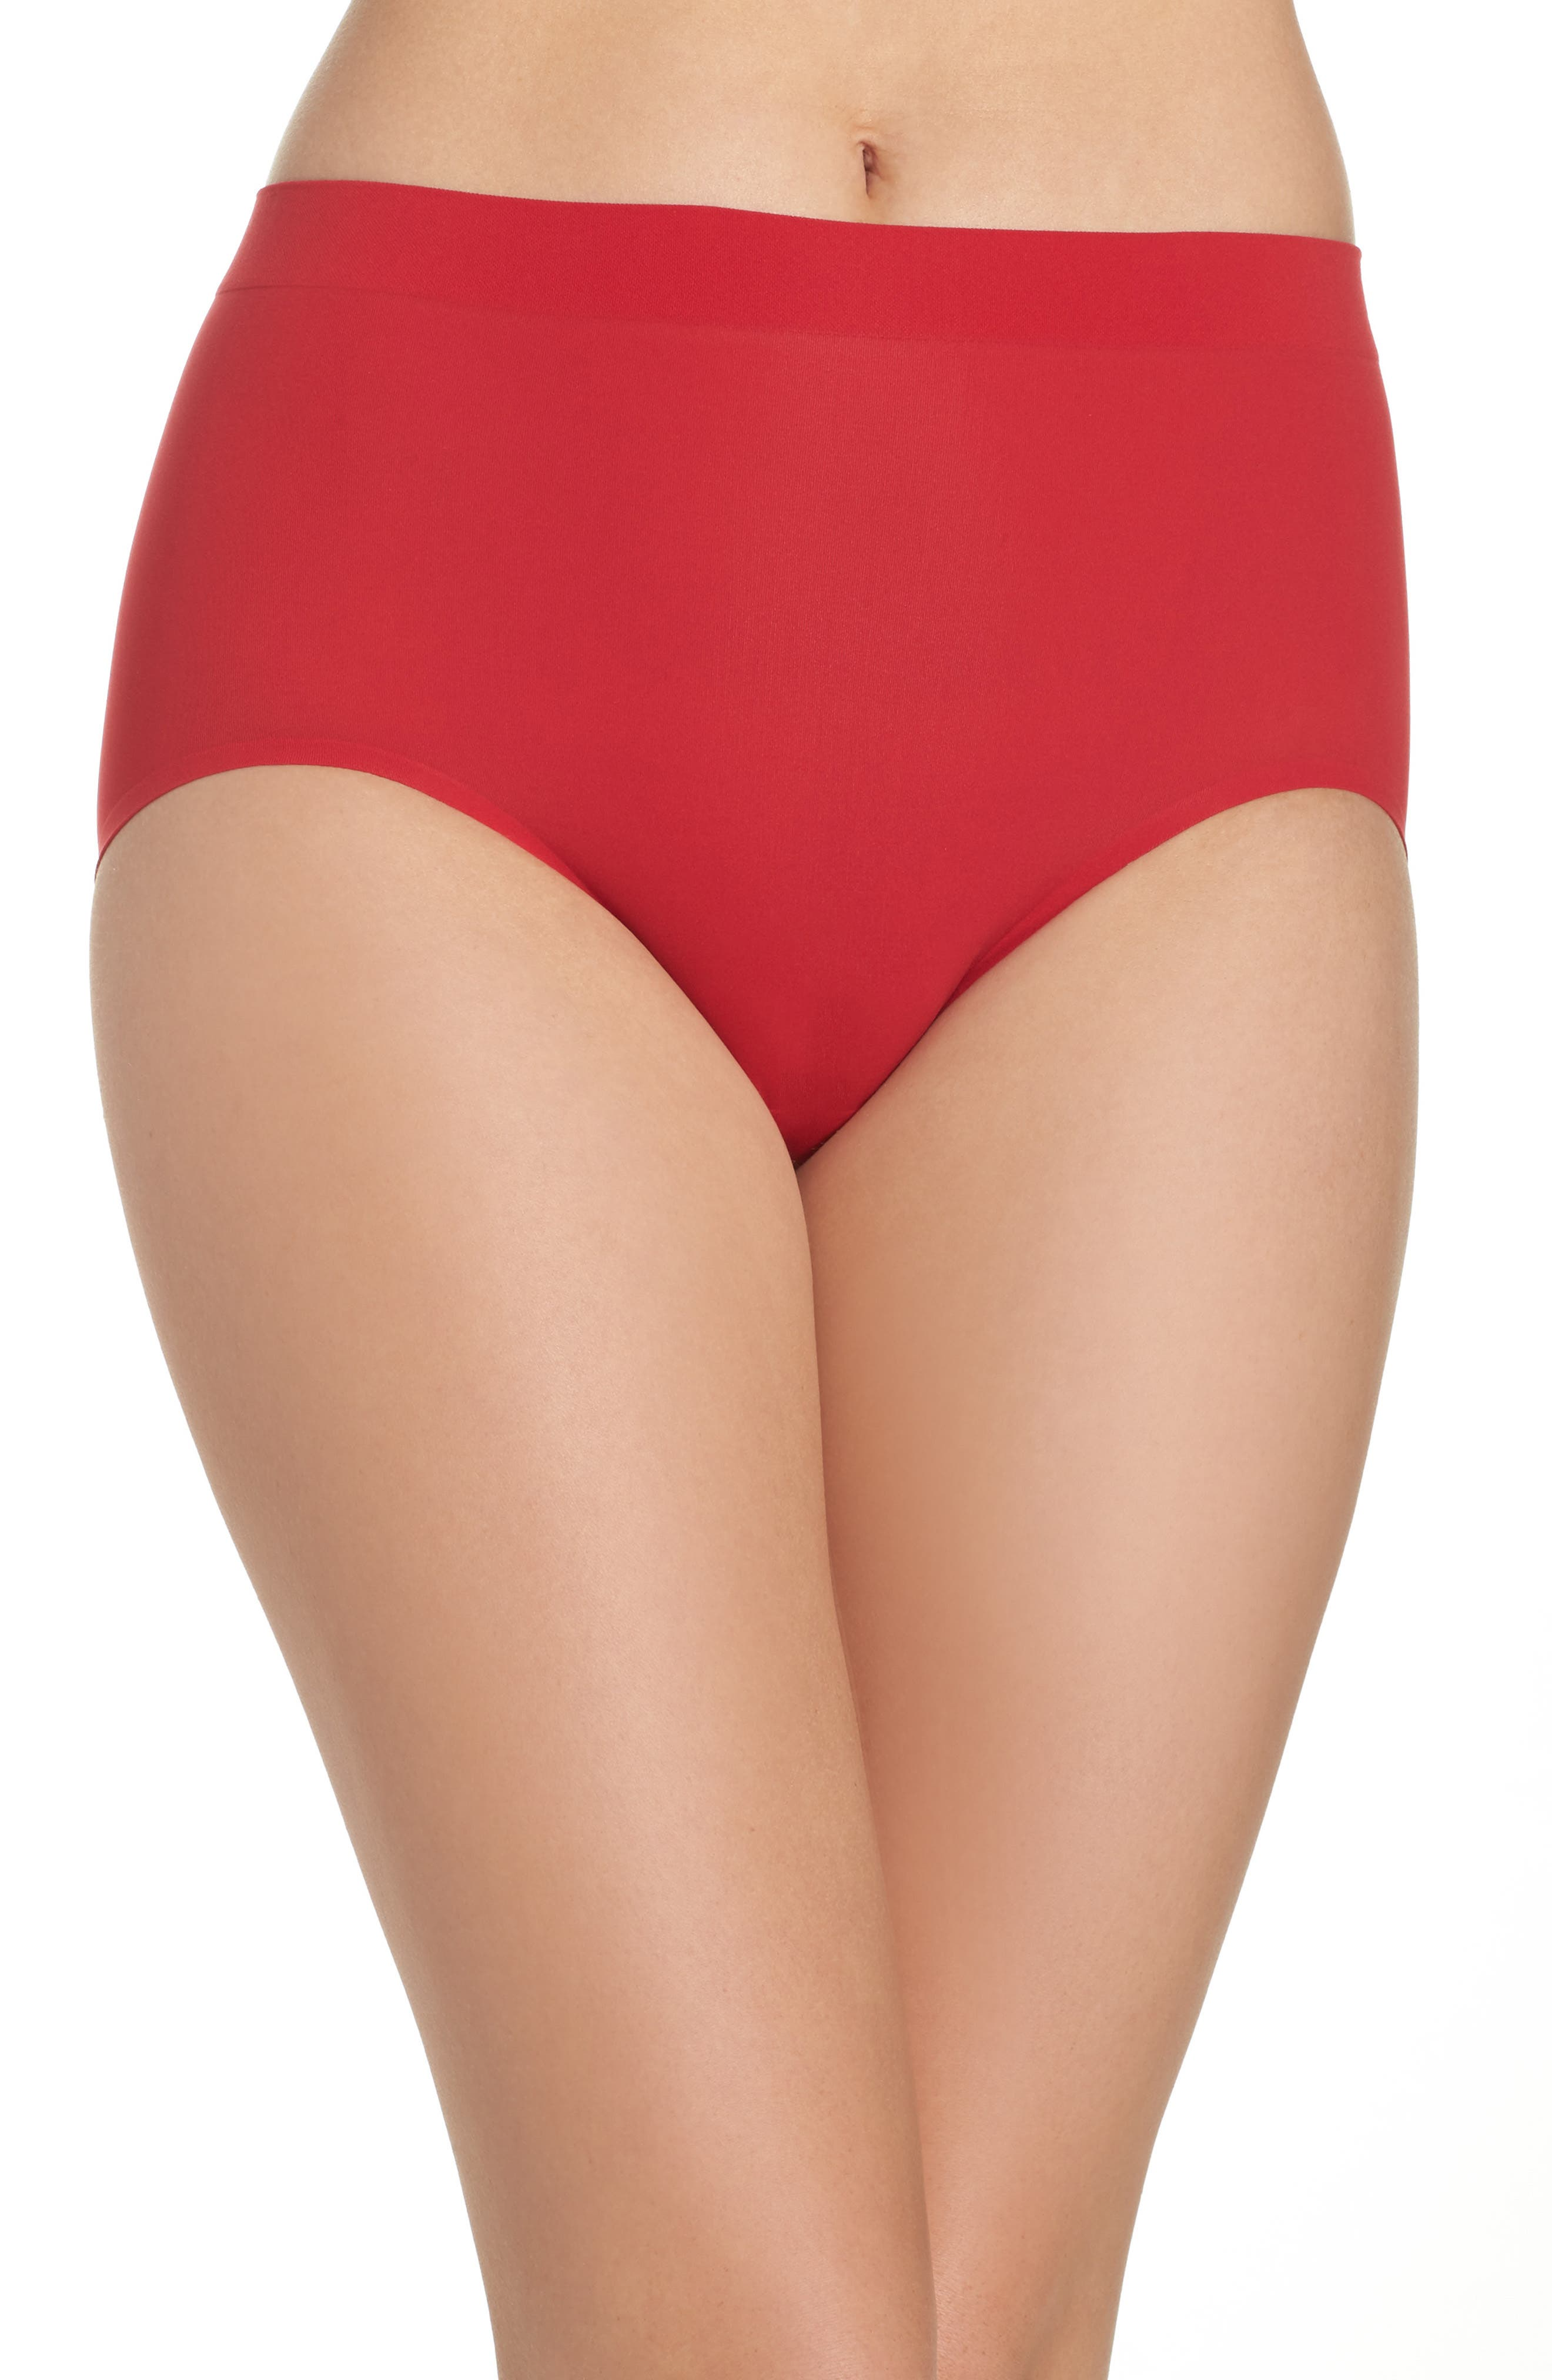 'Skinsense' Seamless Briefs,                         Main,                         color, Tango Red